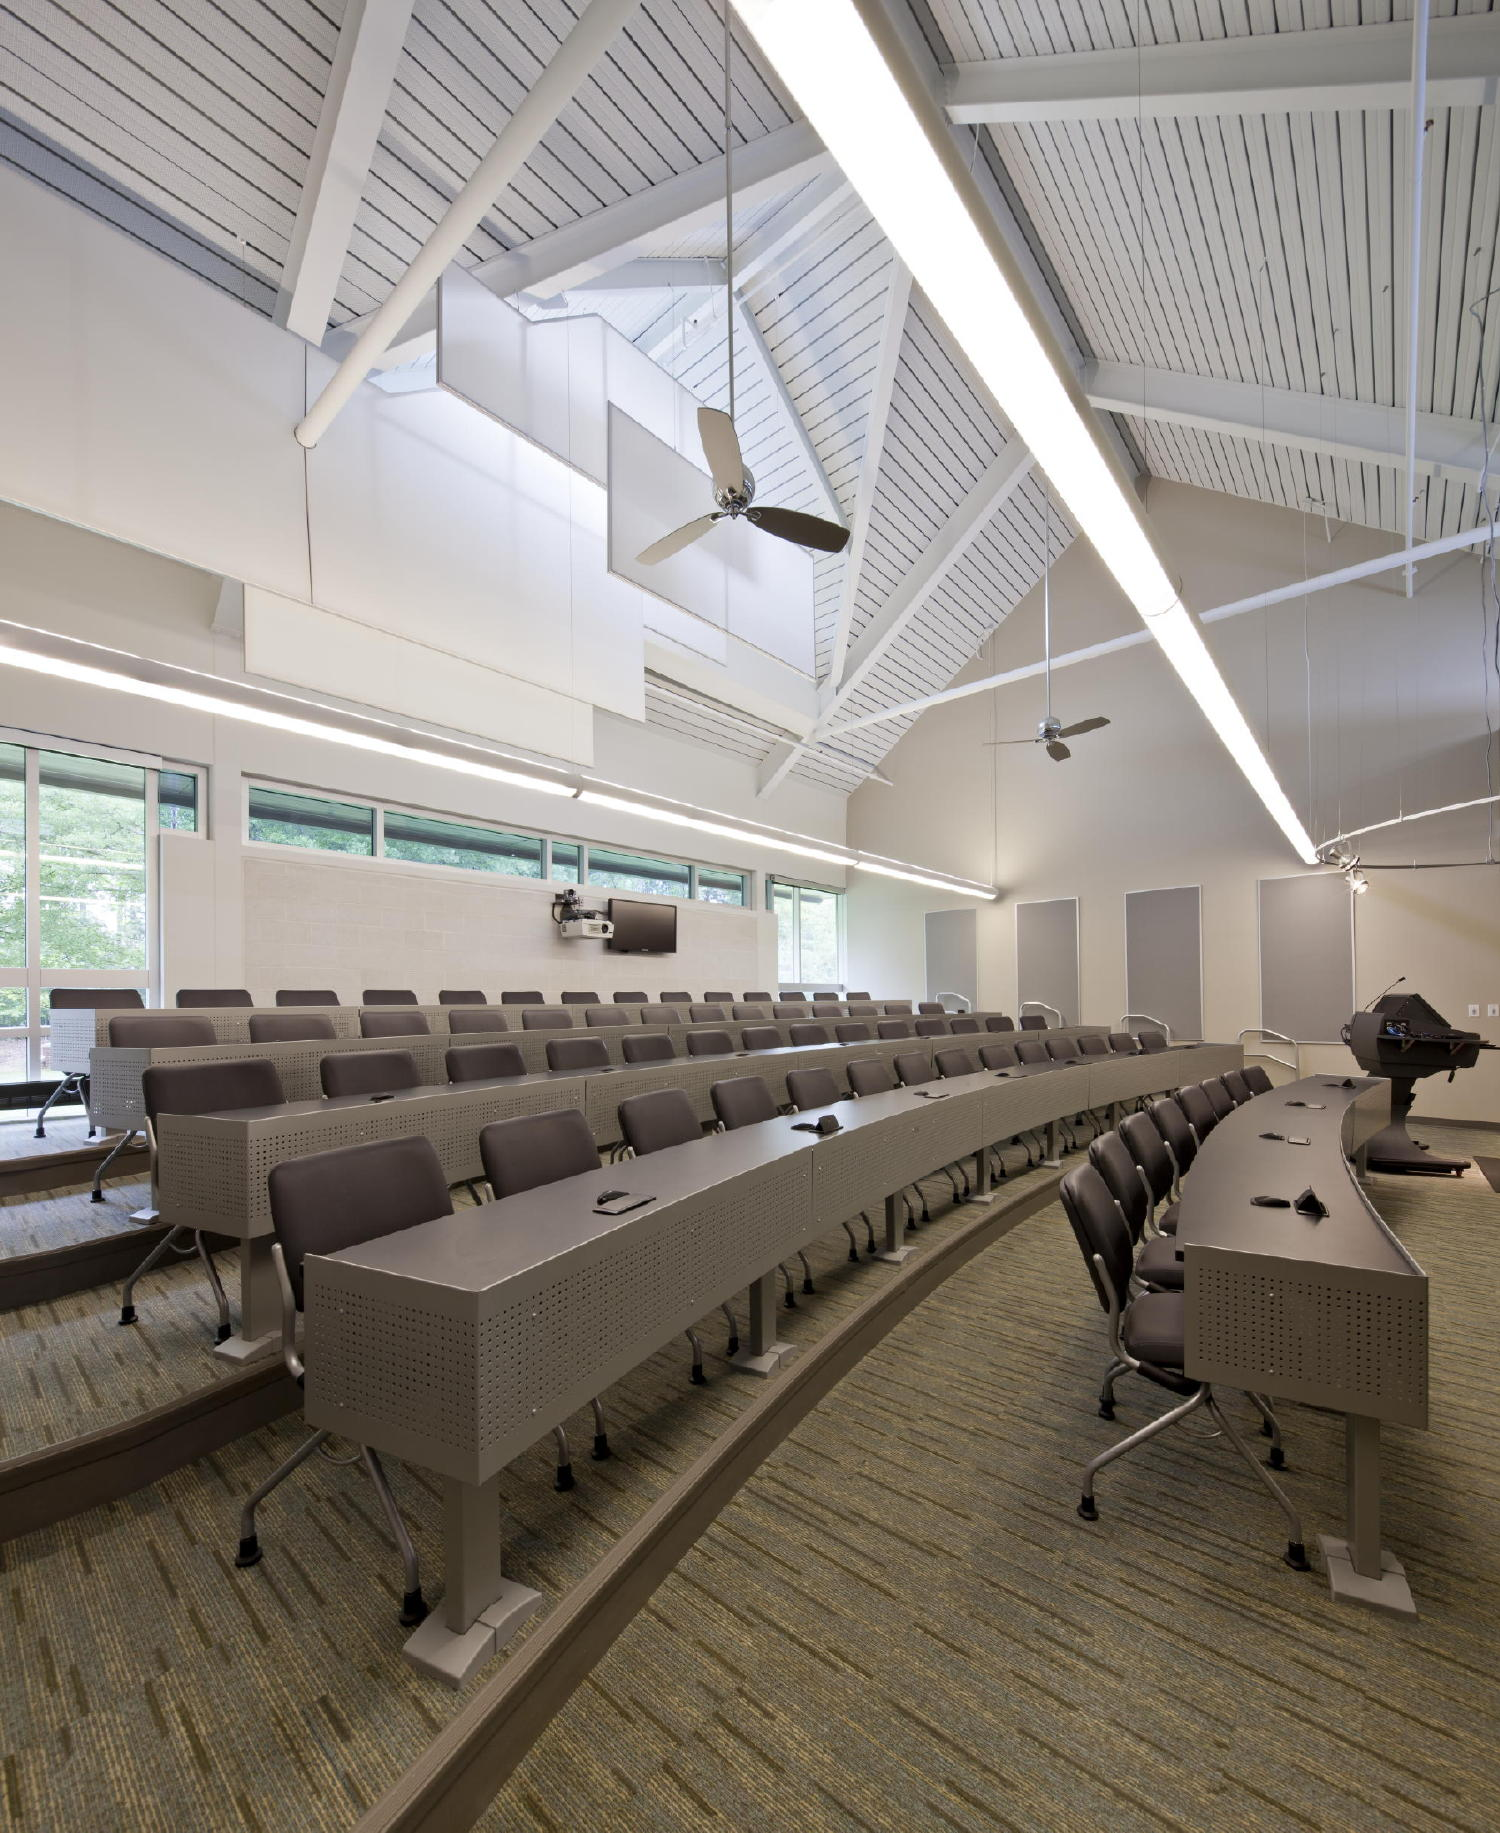 This tiered lecture room represents the latest in education technology. Flexible seating and tables accommodate team-based group learning. Innovative daylighting strategies were employed to create AV-enabled classrooms free of glare. c 2012 Jonathan Hillyer / Atlanta